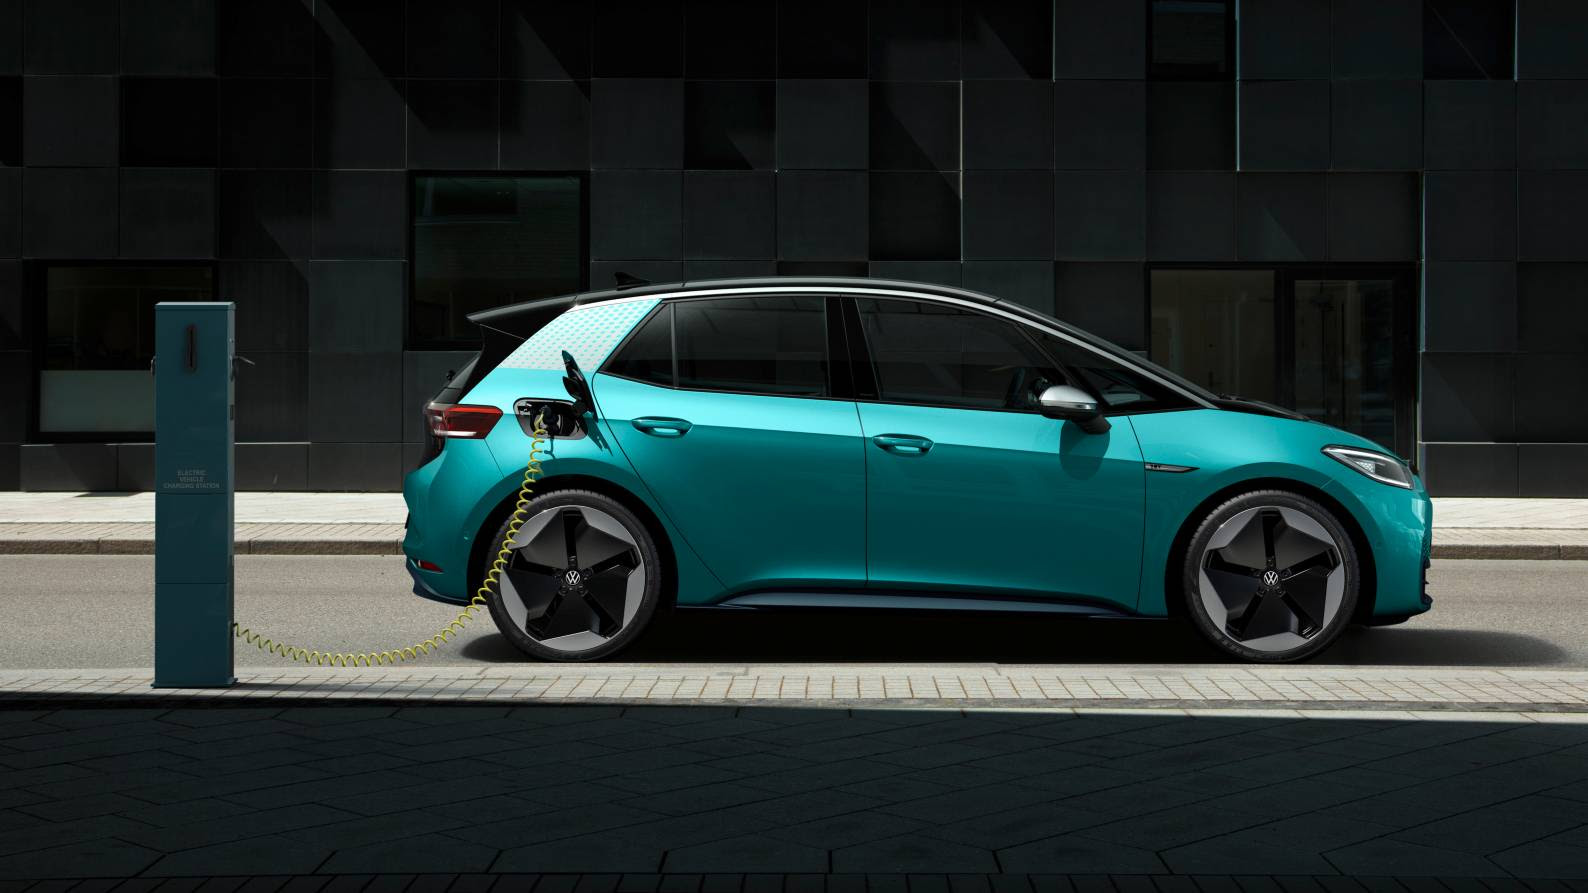 Volkswagen says battery costs will drop by as much as 50 percent for entry-level EVs with the single-cell battery. Image: Volkswagen